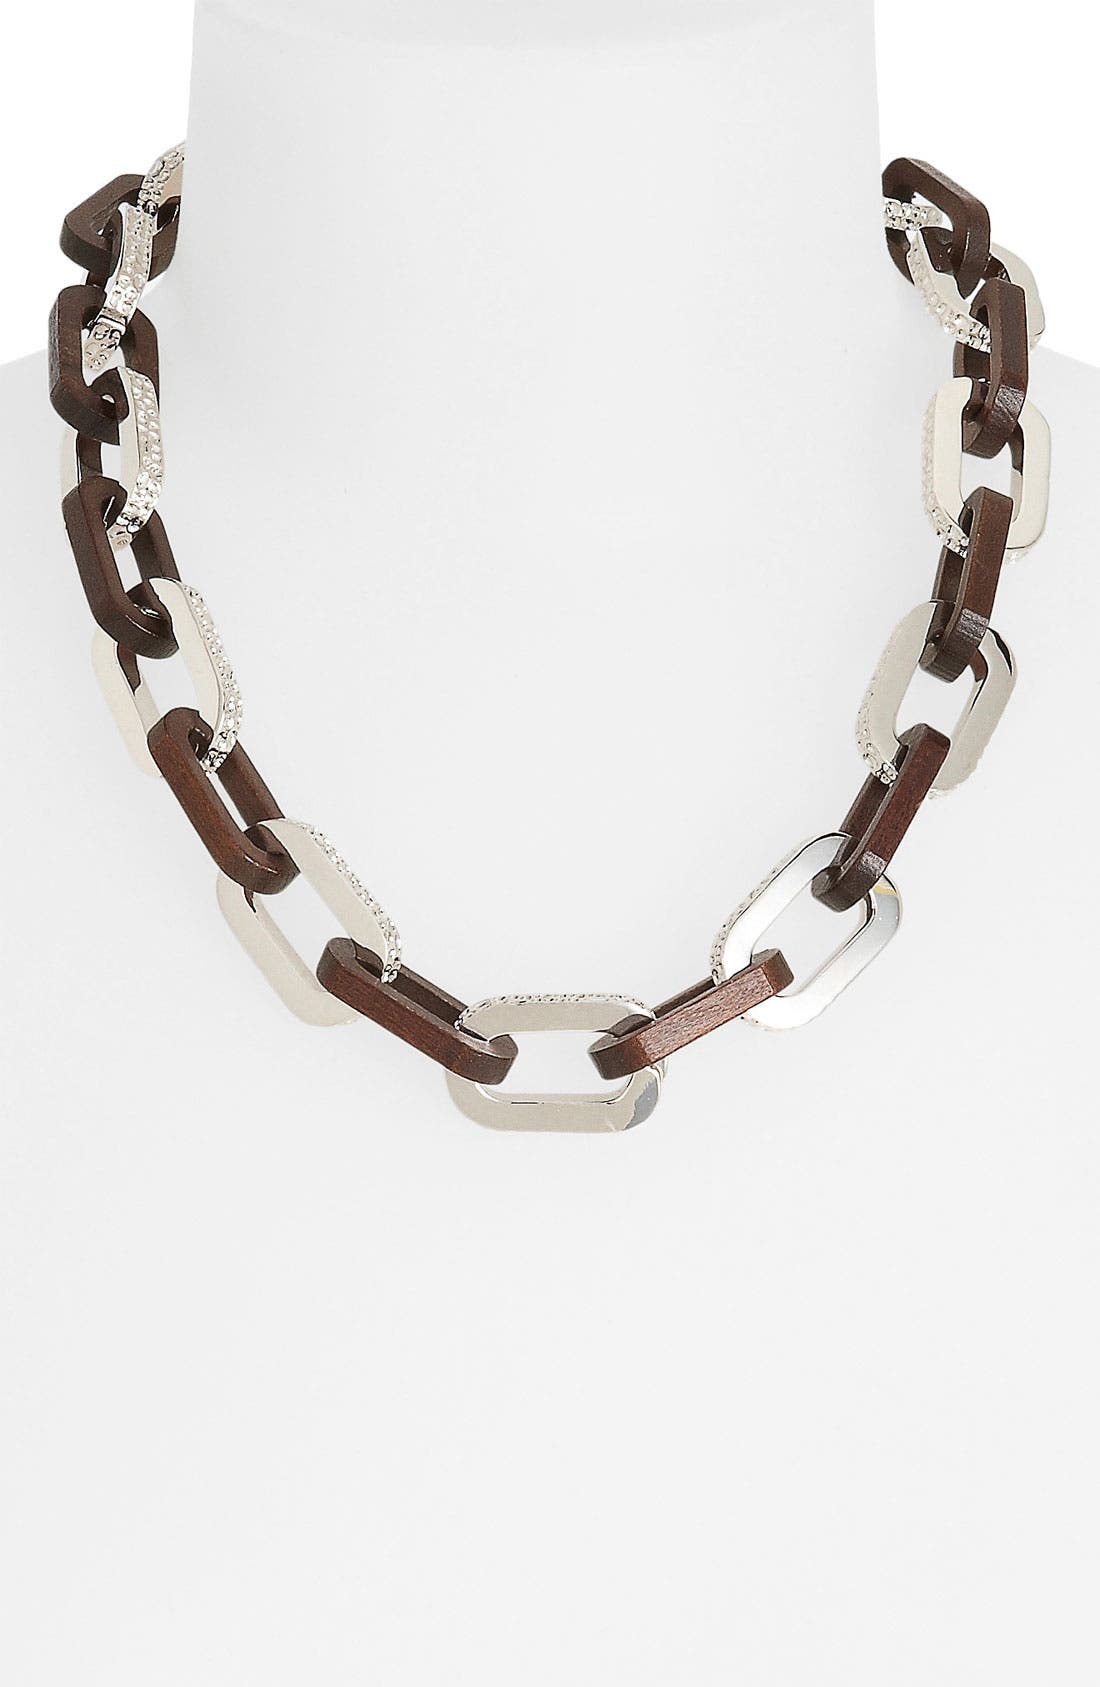 Main Image - MARC BY MARC JACOBS 'Articulated Zebra' Link Necklace